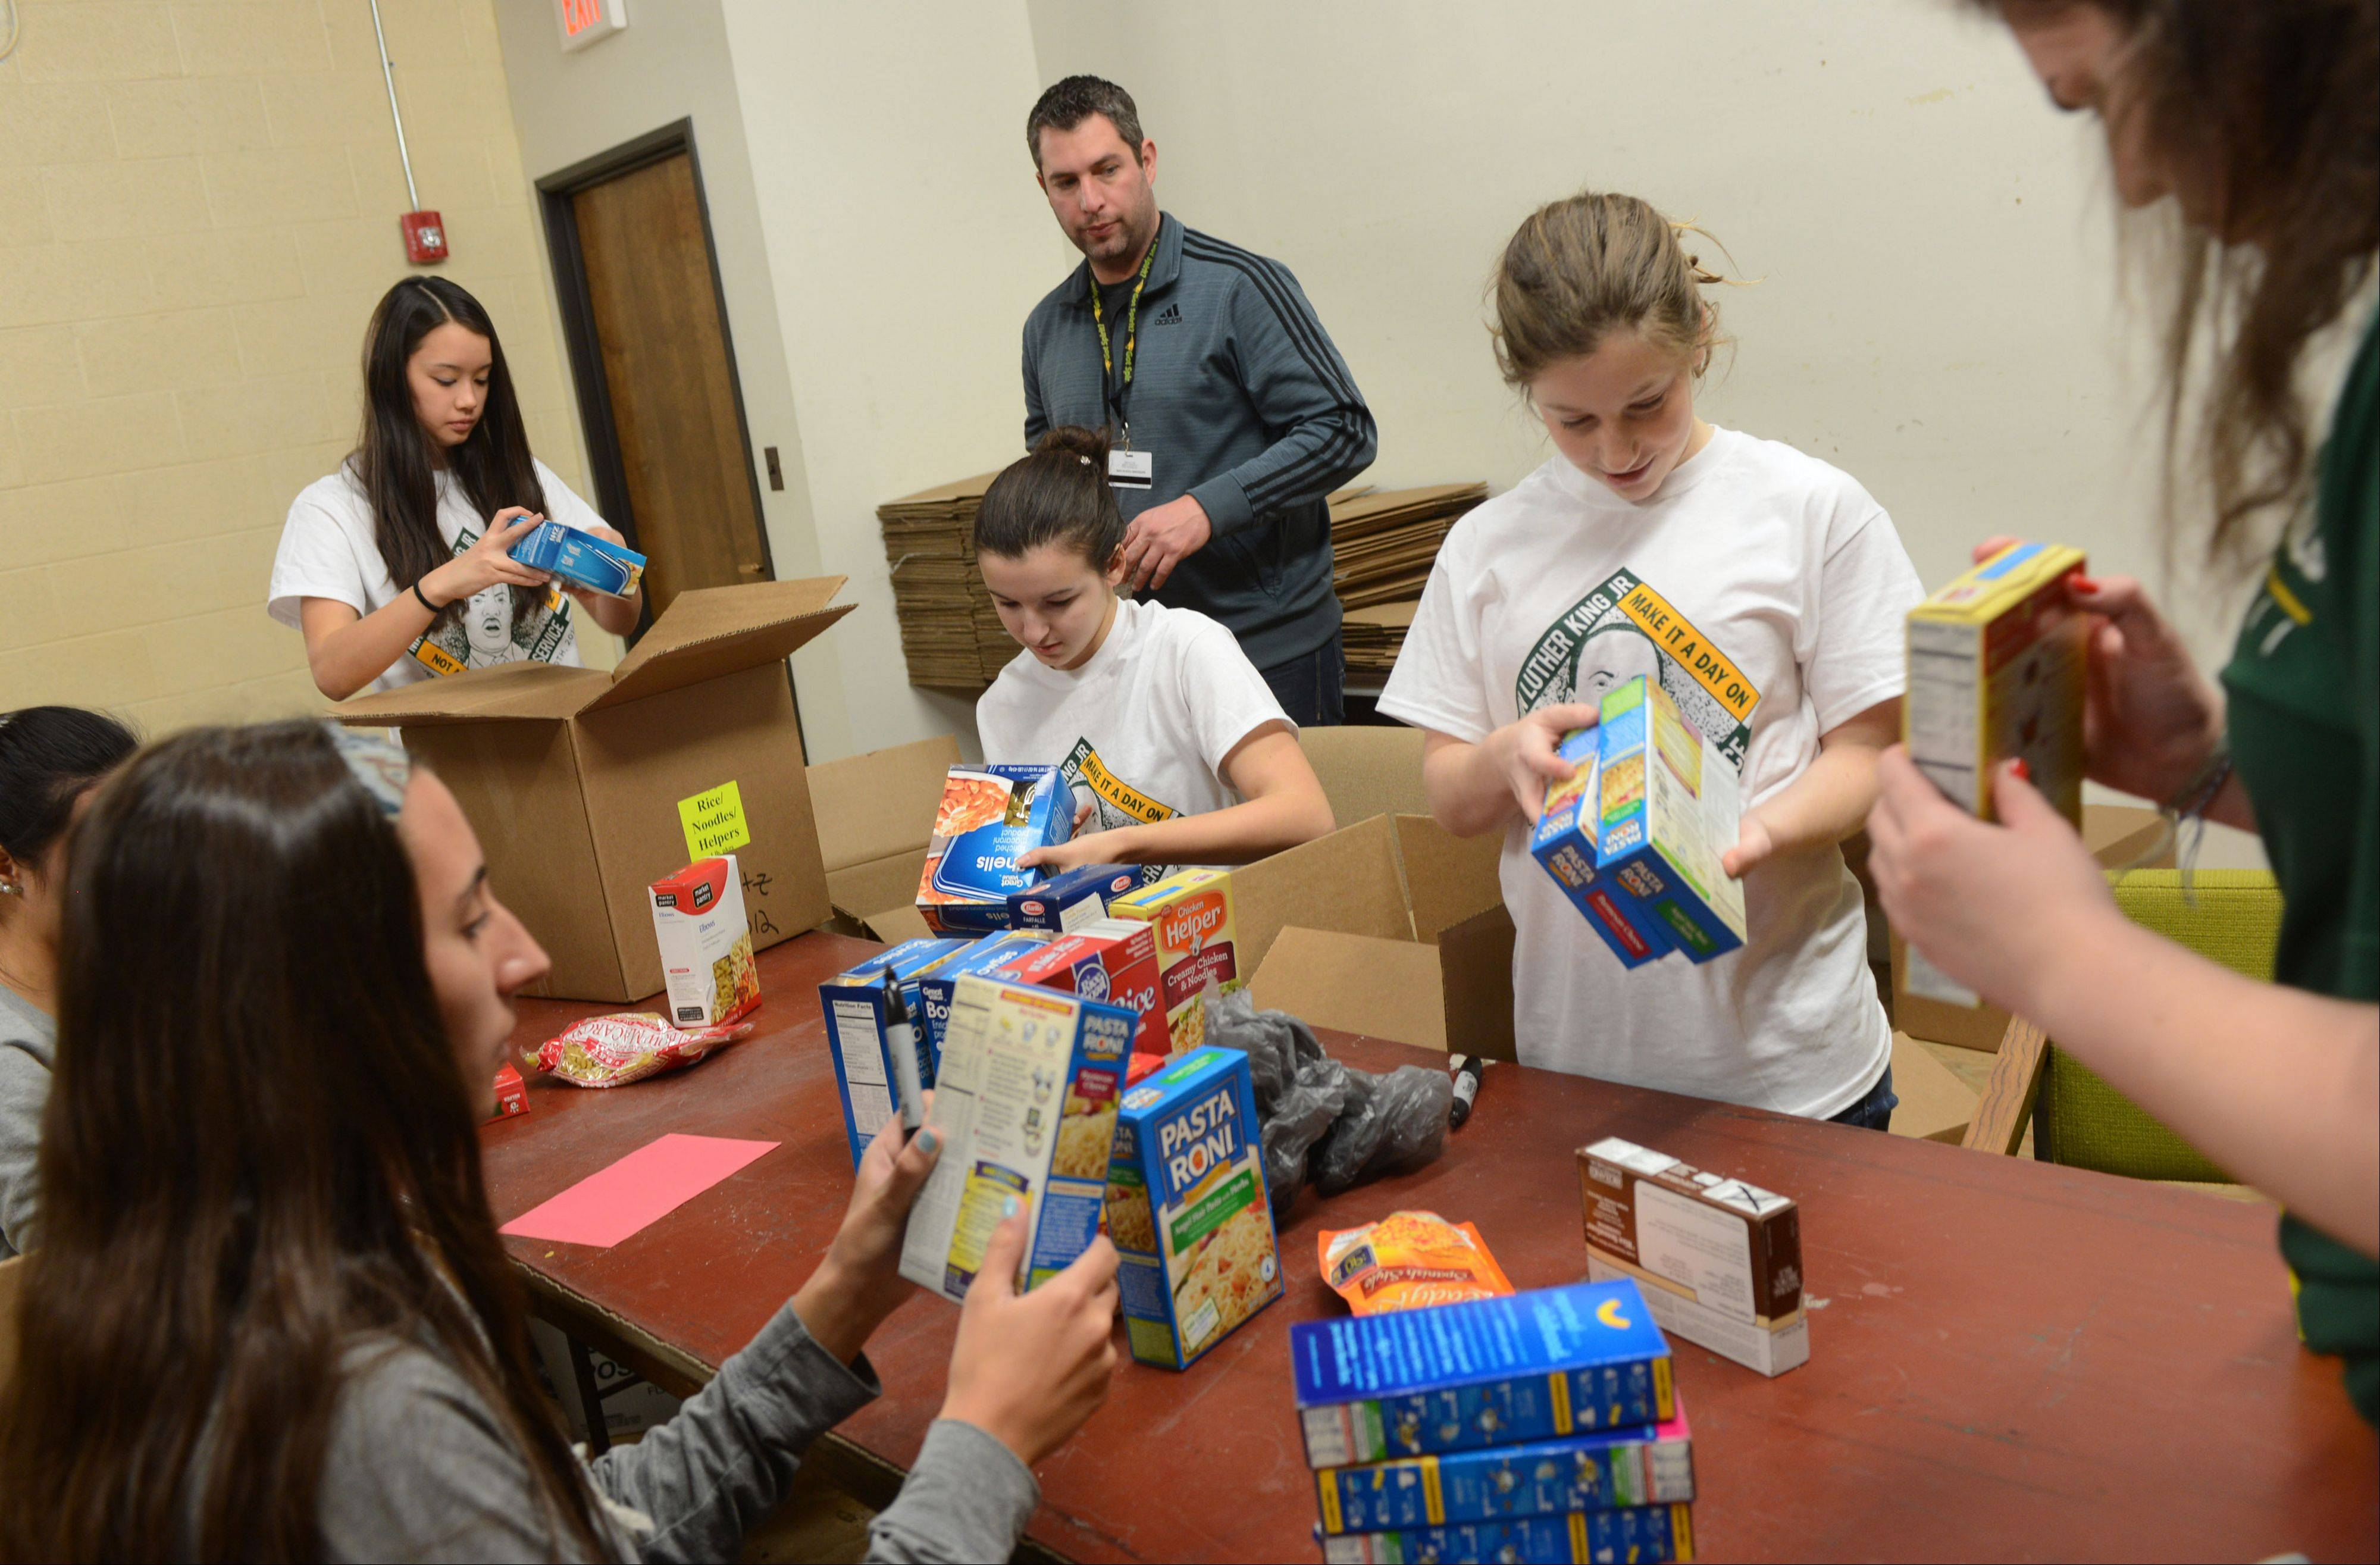 Ted Goergen, director of student activities, works with Stevenson High School students Monday at the Vernon Township Food Pantry on Martin Luther King Jr. Day.